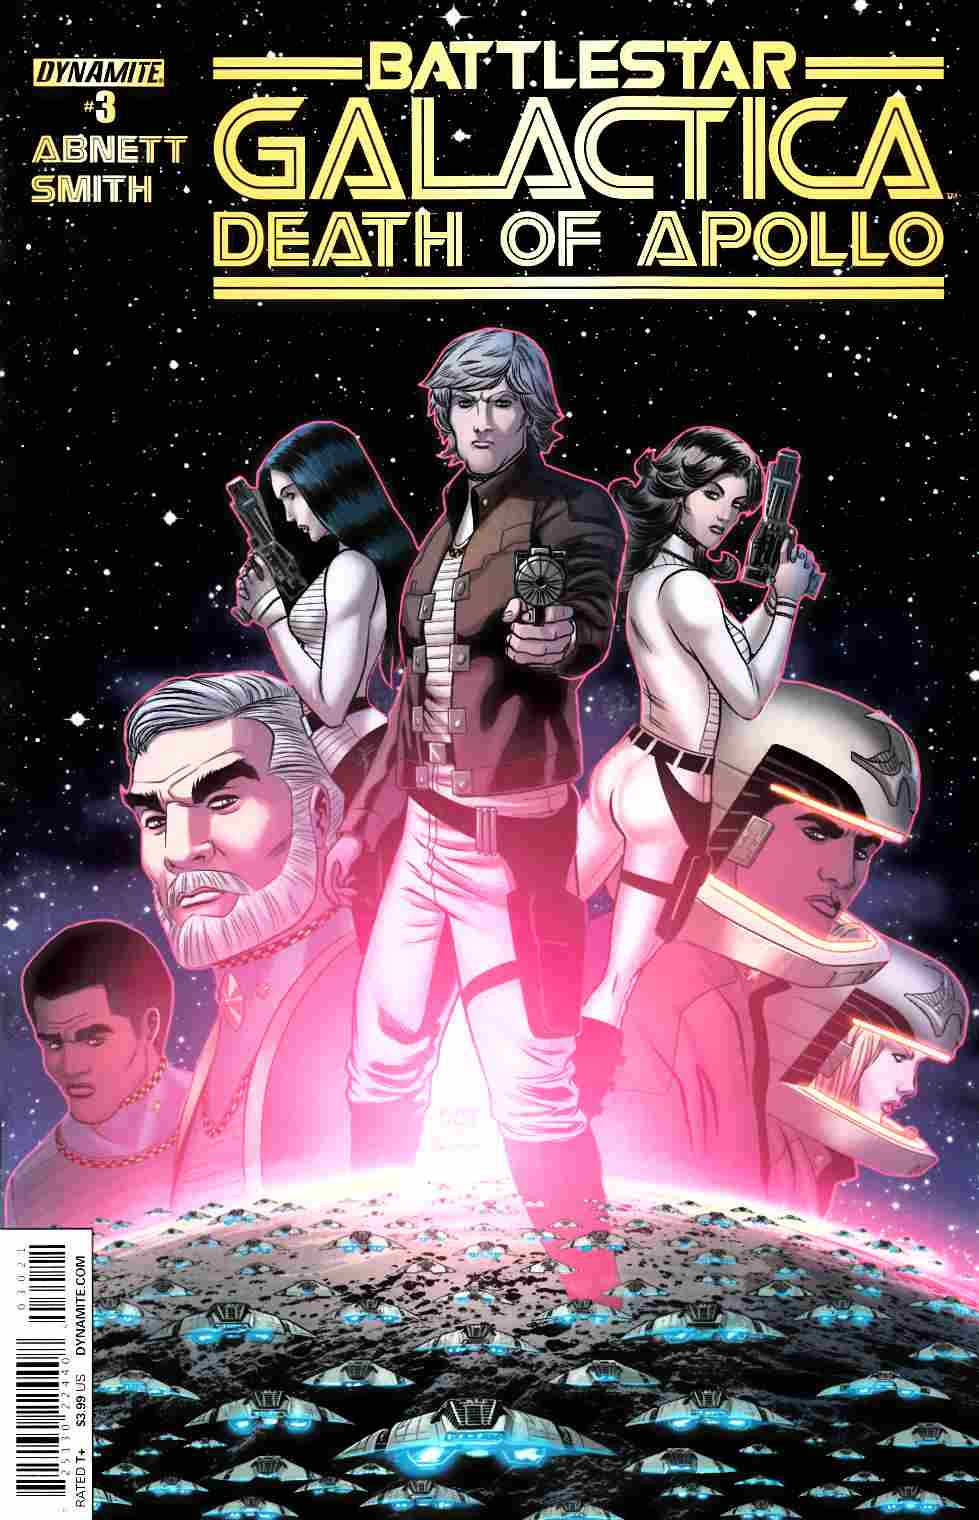 Battlestar Galactica Death of Apollo #3 Cover B- Smith [Dynamite Comic]